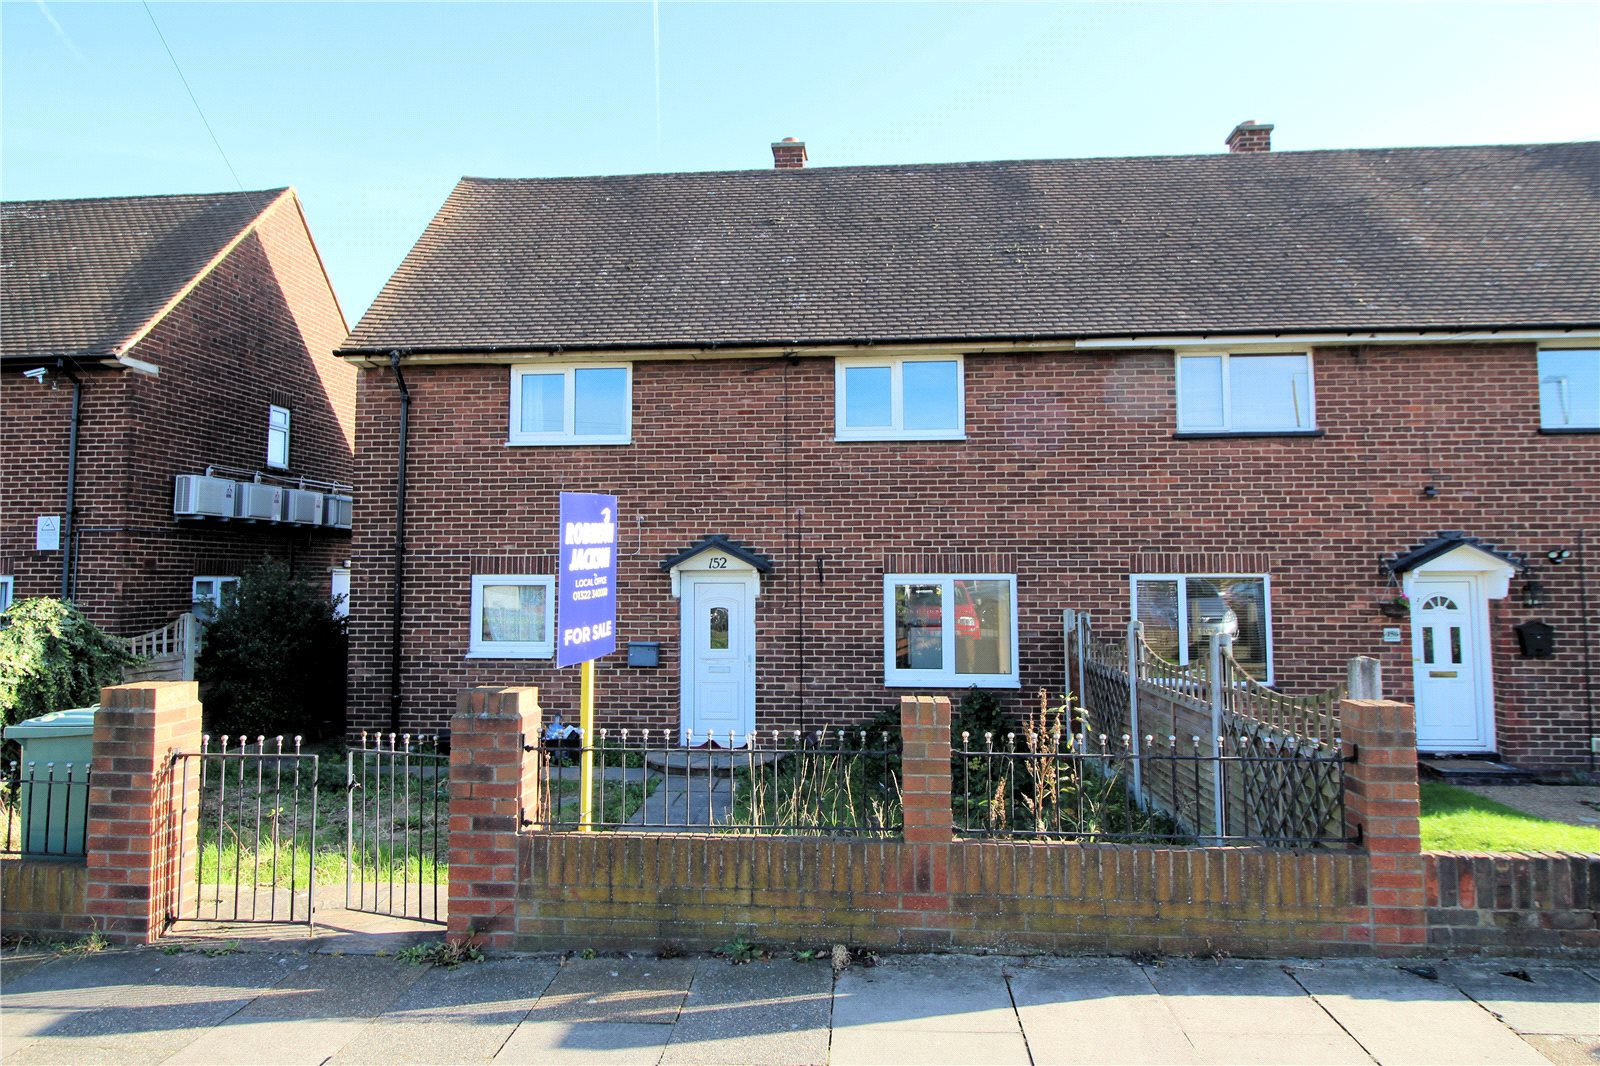 Bridge Road, Slade Green, Kent, DA8